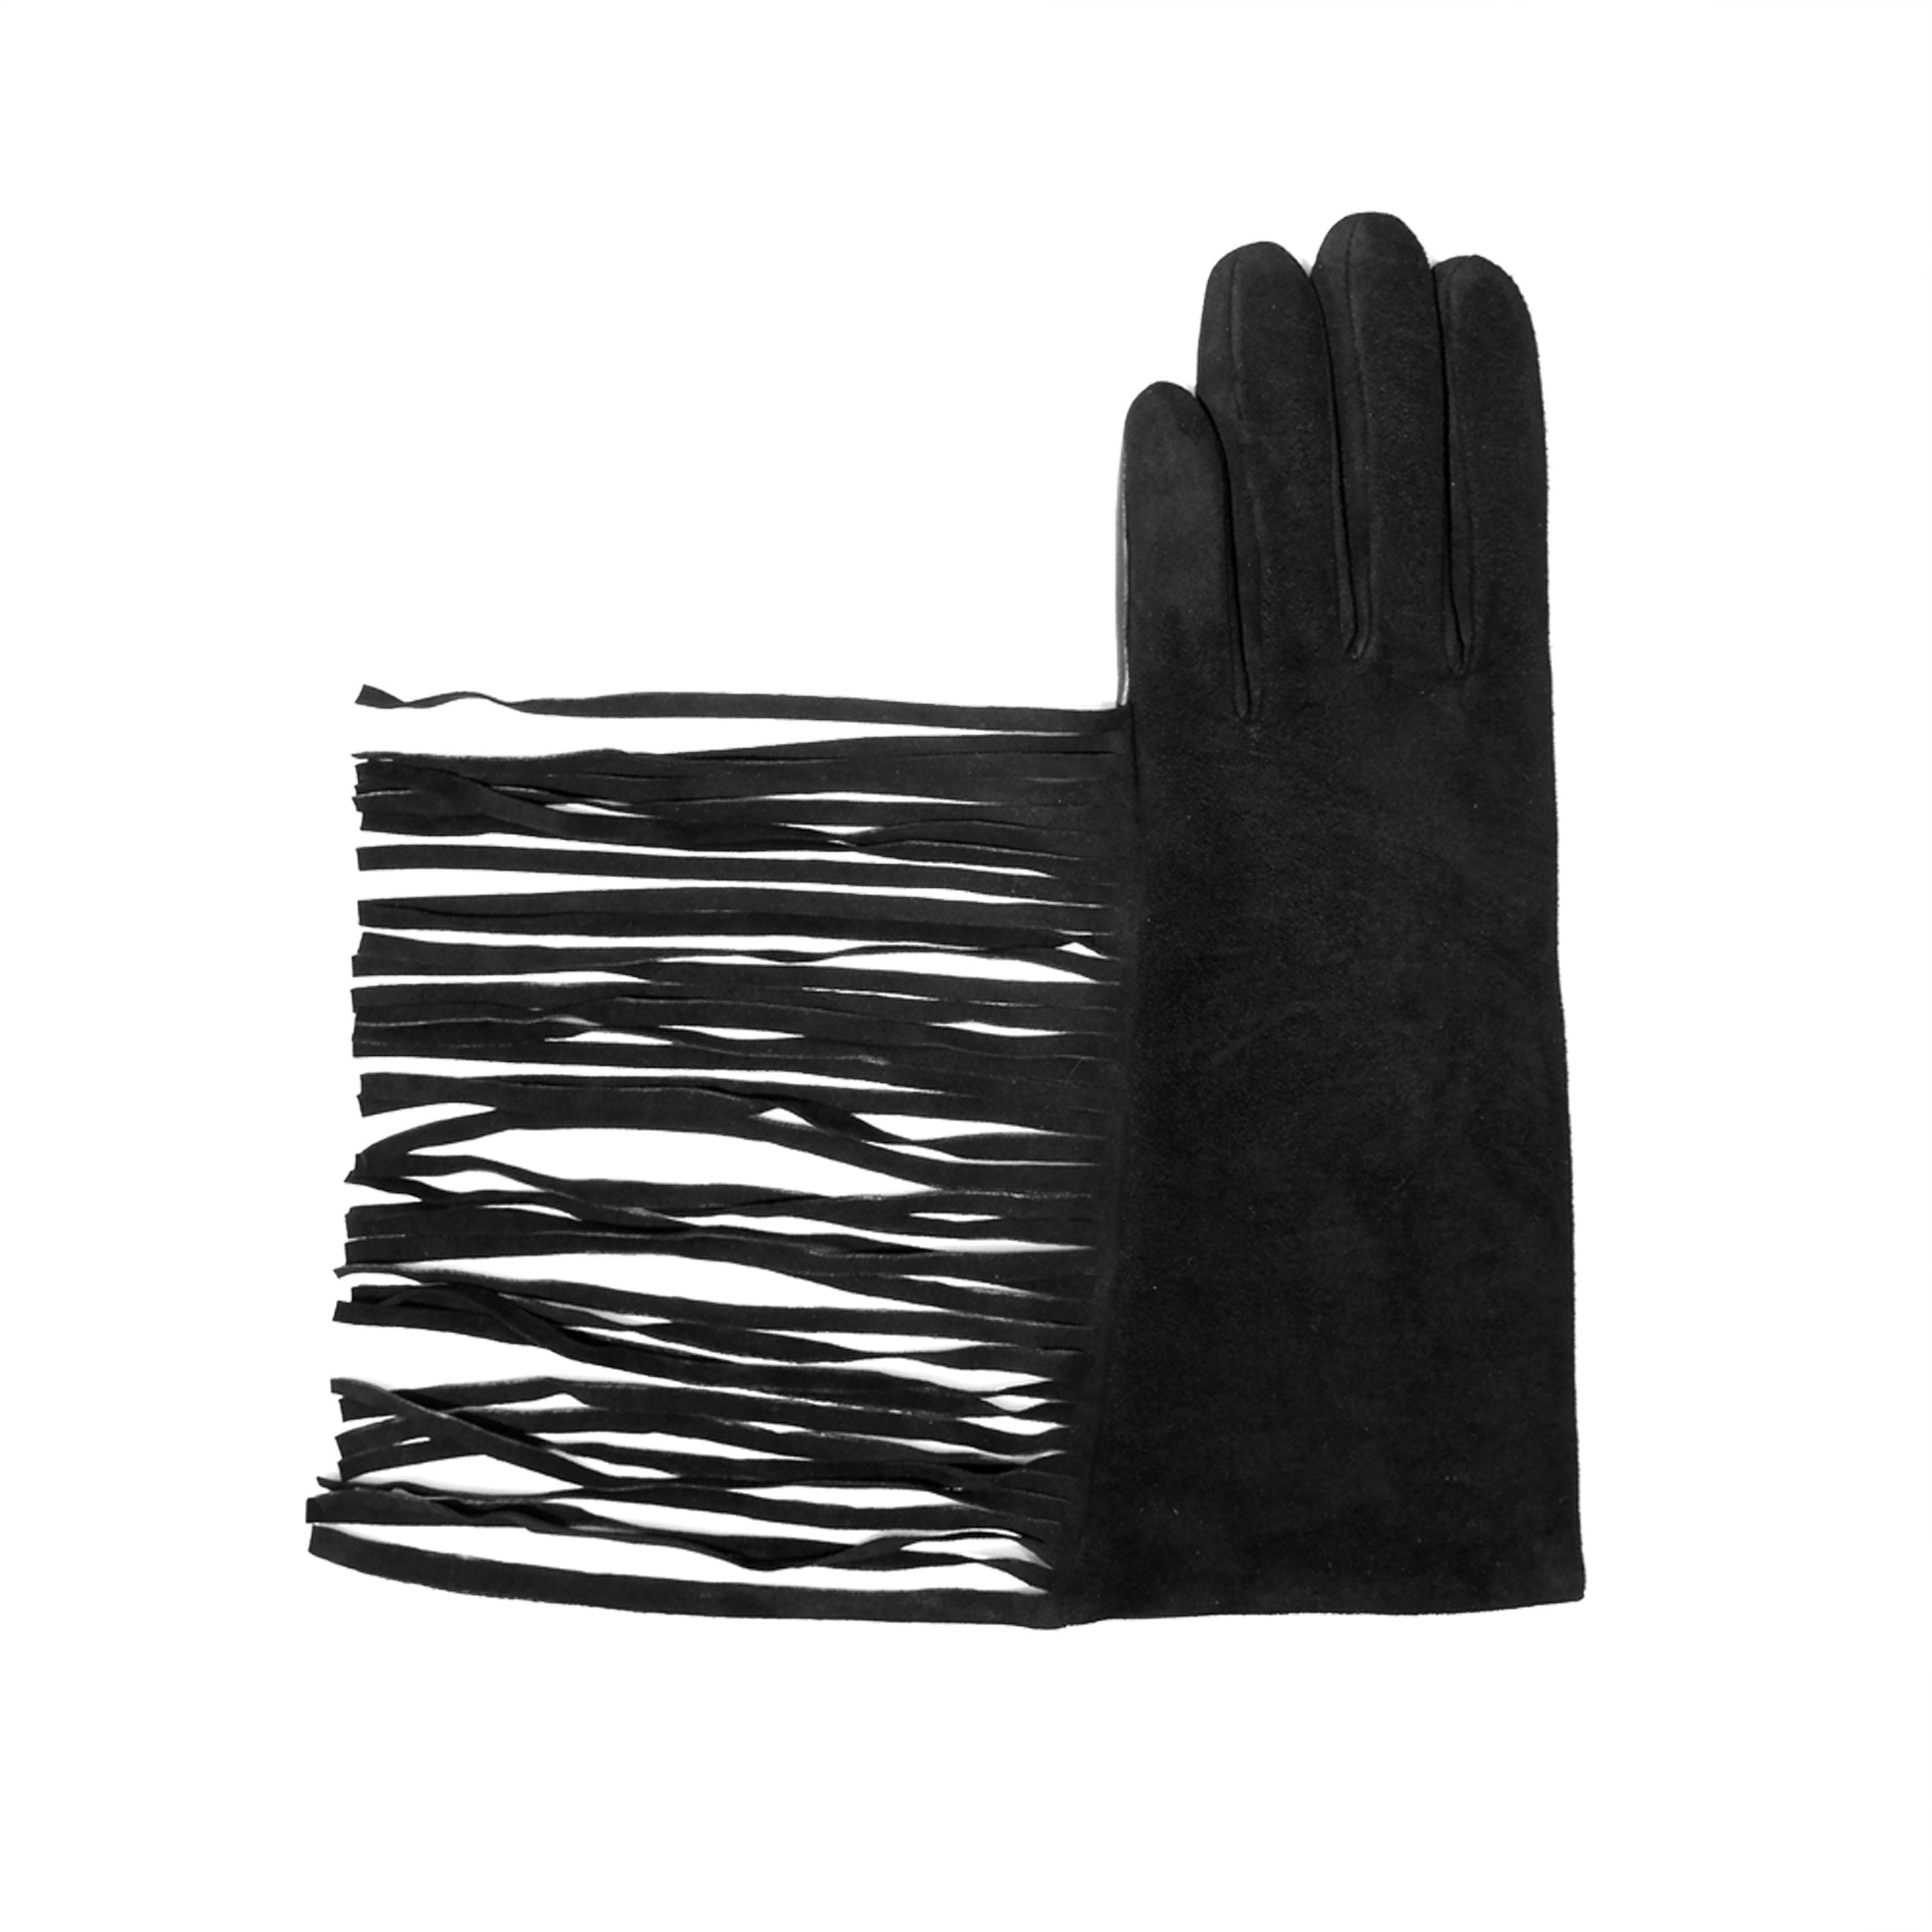 The Joliet Touchscreen Glove for Her